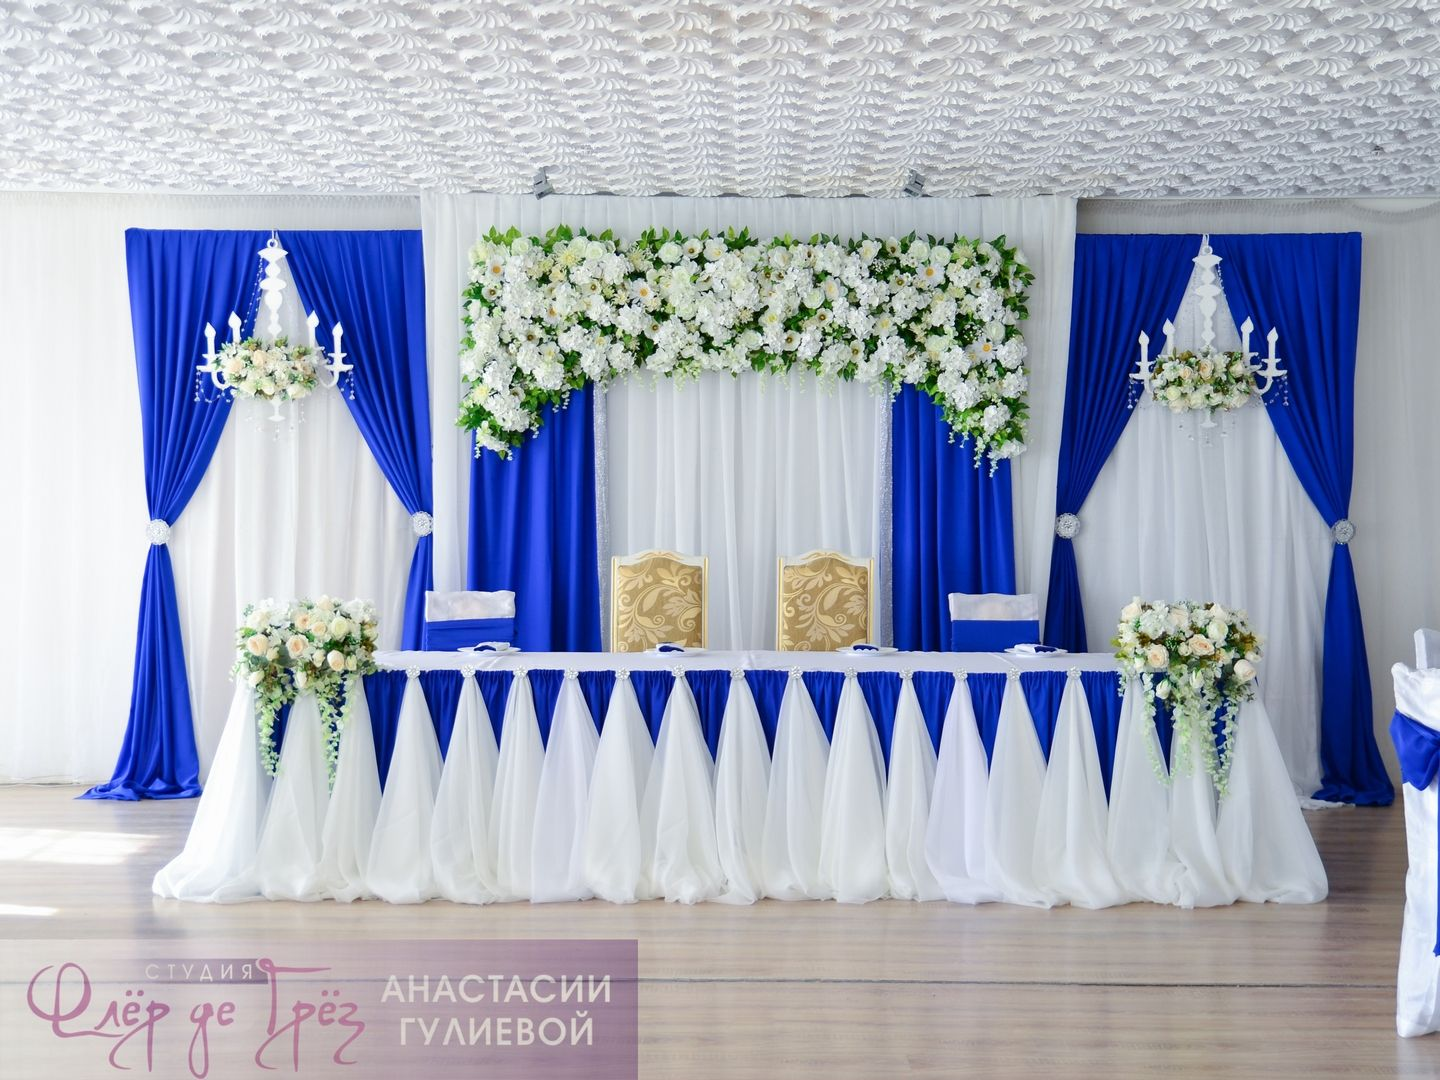 Pin by Biswasmanna on Flower backdrop | White wedding decorations, Wedding  stage decorations, Wedding decorations